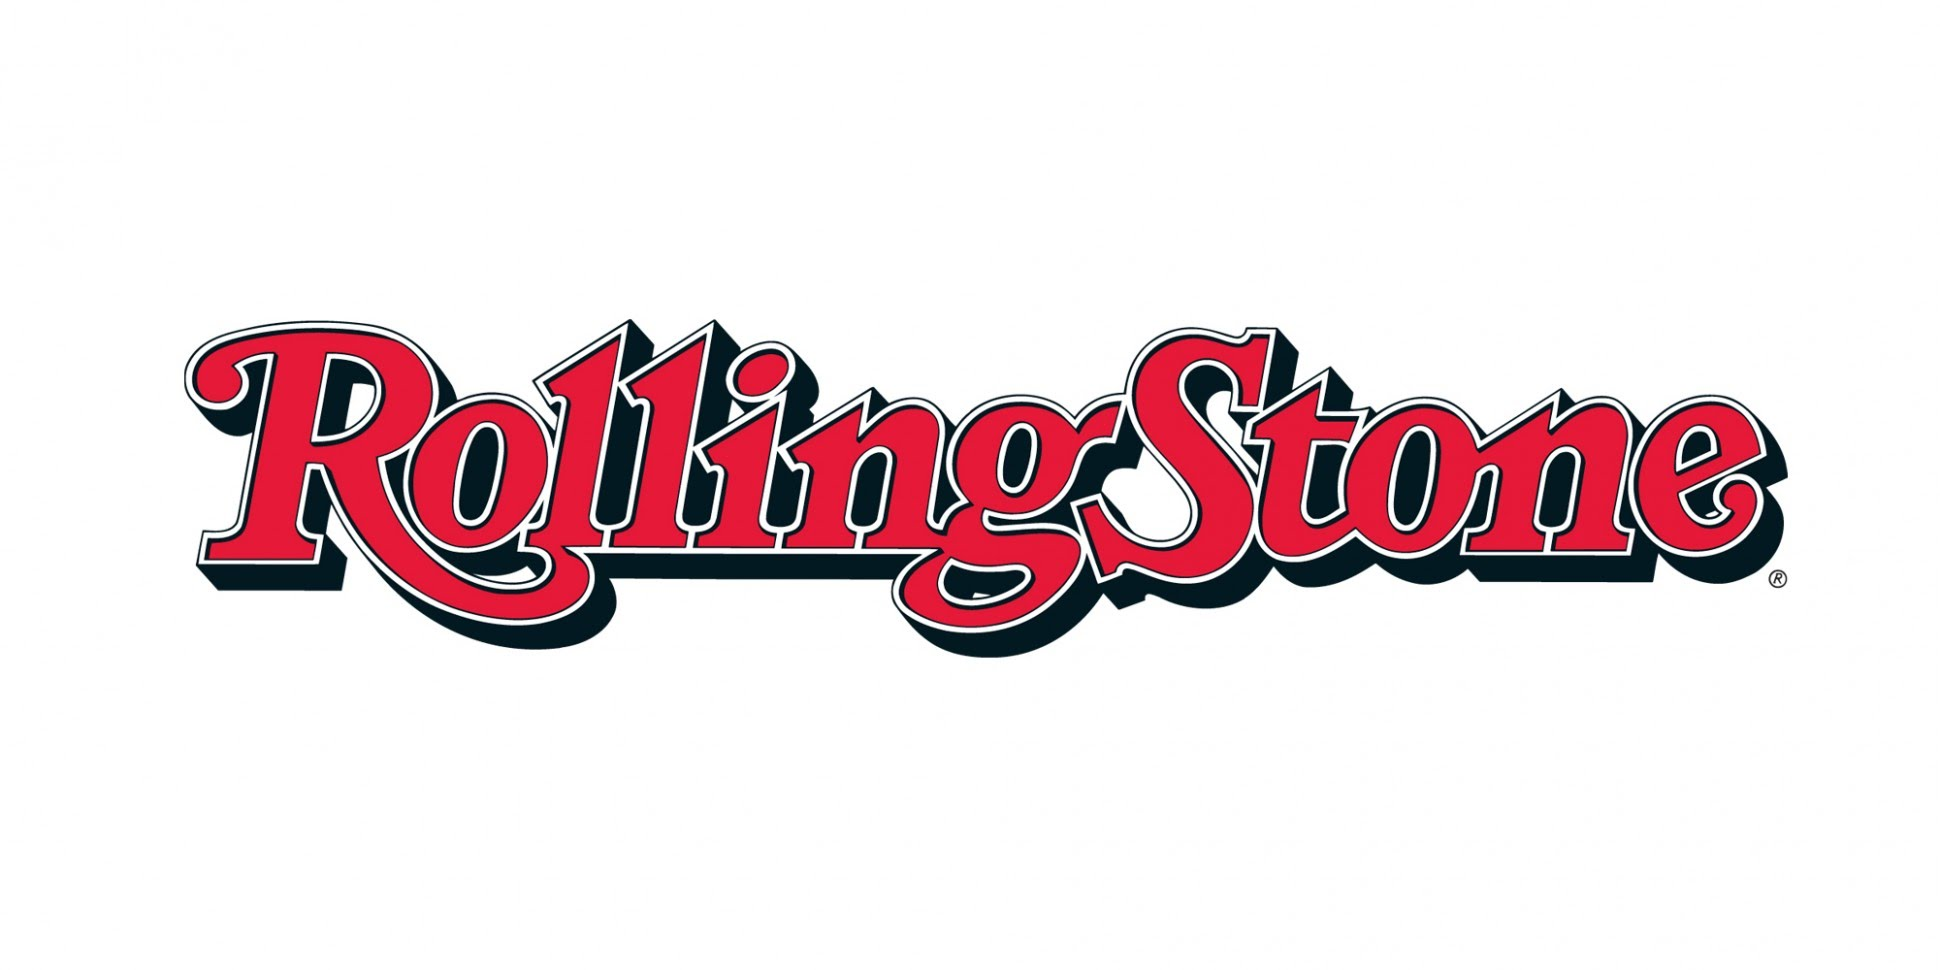 1940x970 Rolling Stone Reveals Top 50 Songs of the 1990s (News Update